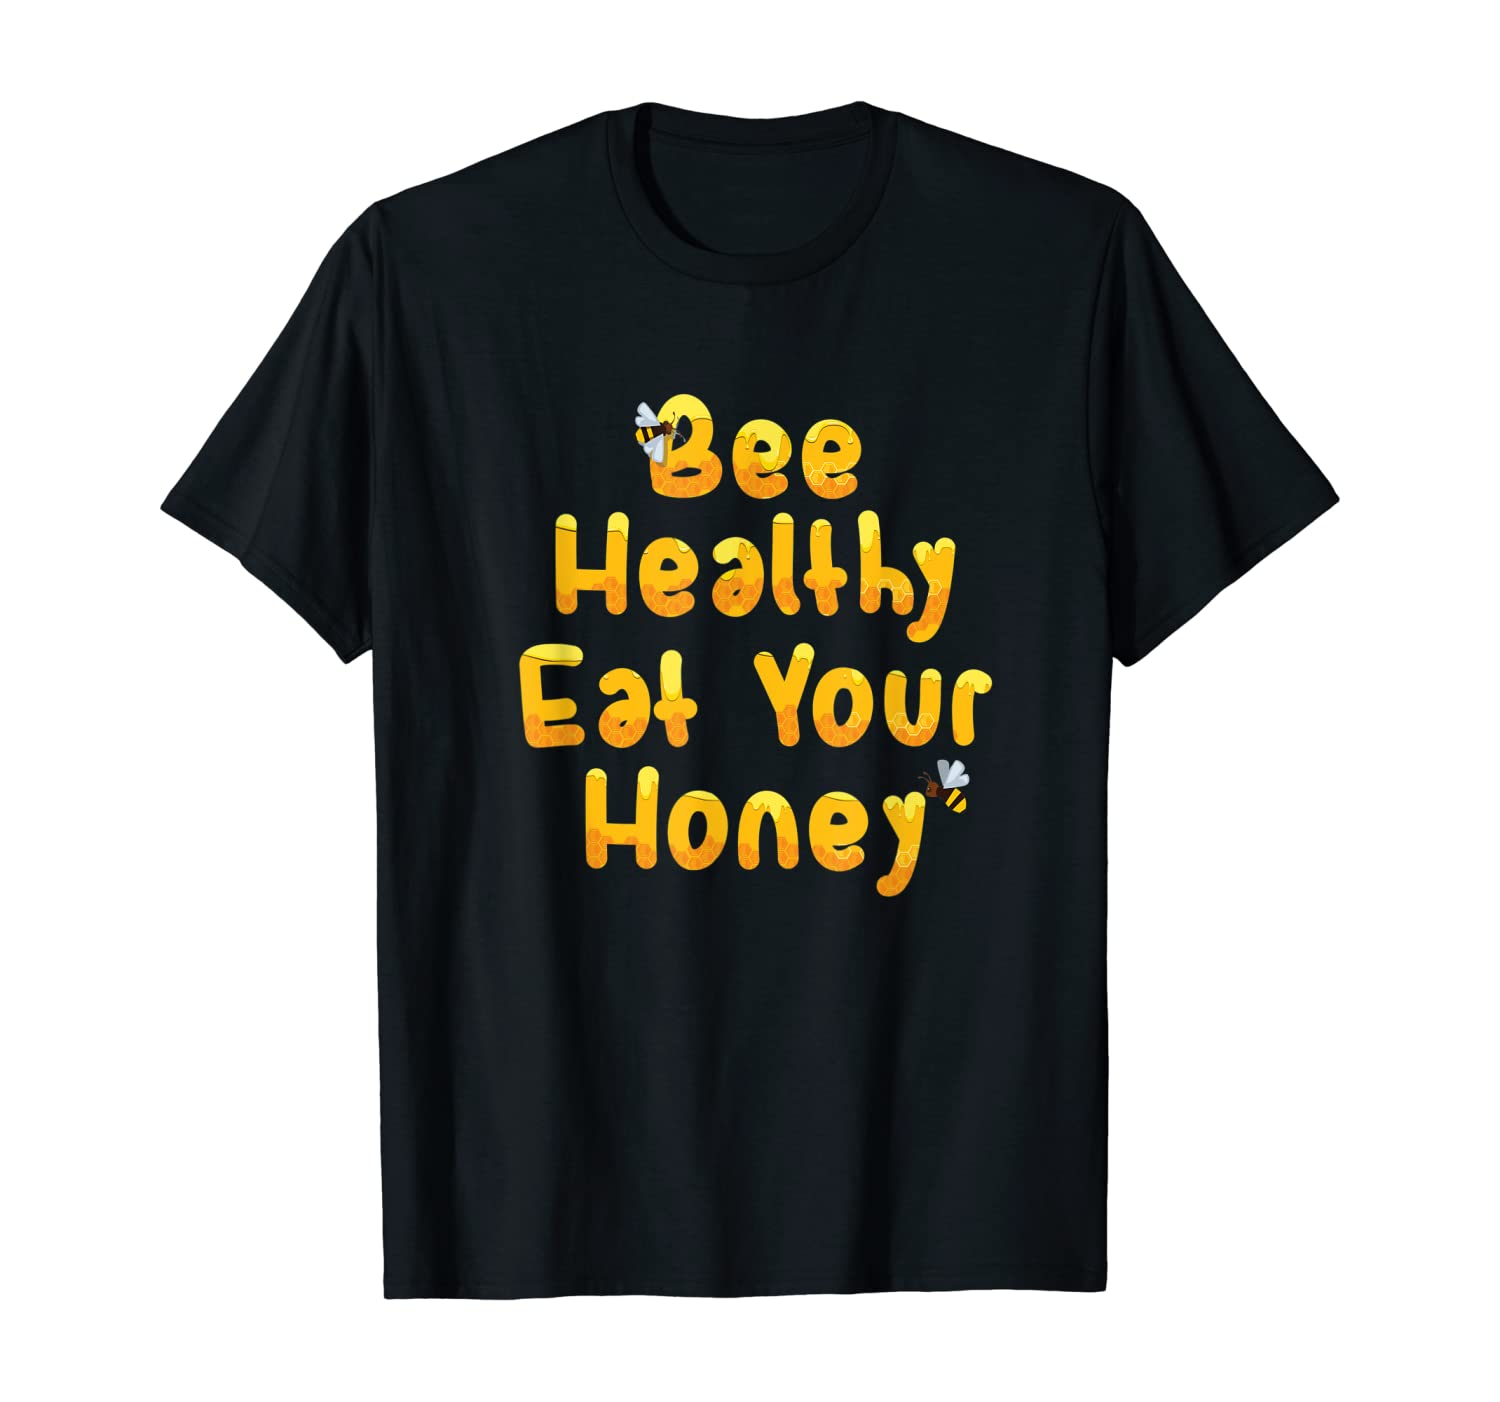 Bee Healthy, Eat Your Honey Funny Bee Lover Gift T-Shirt